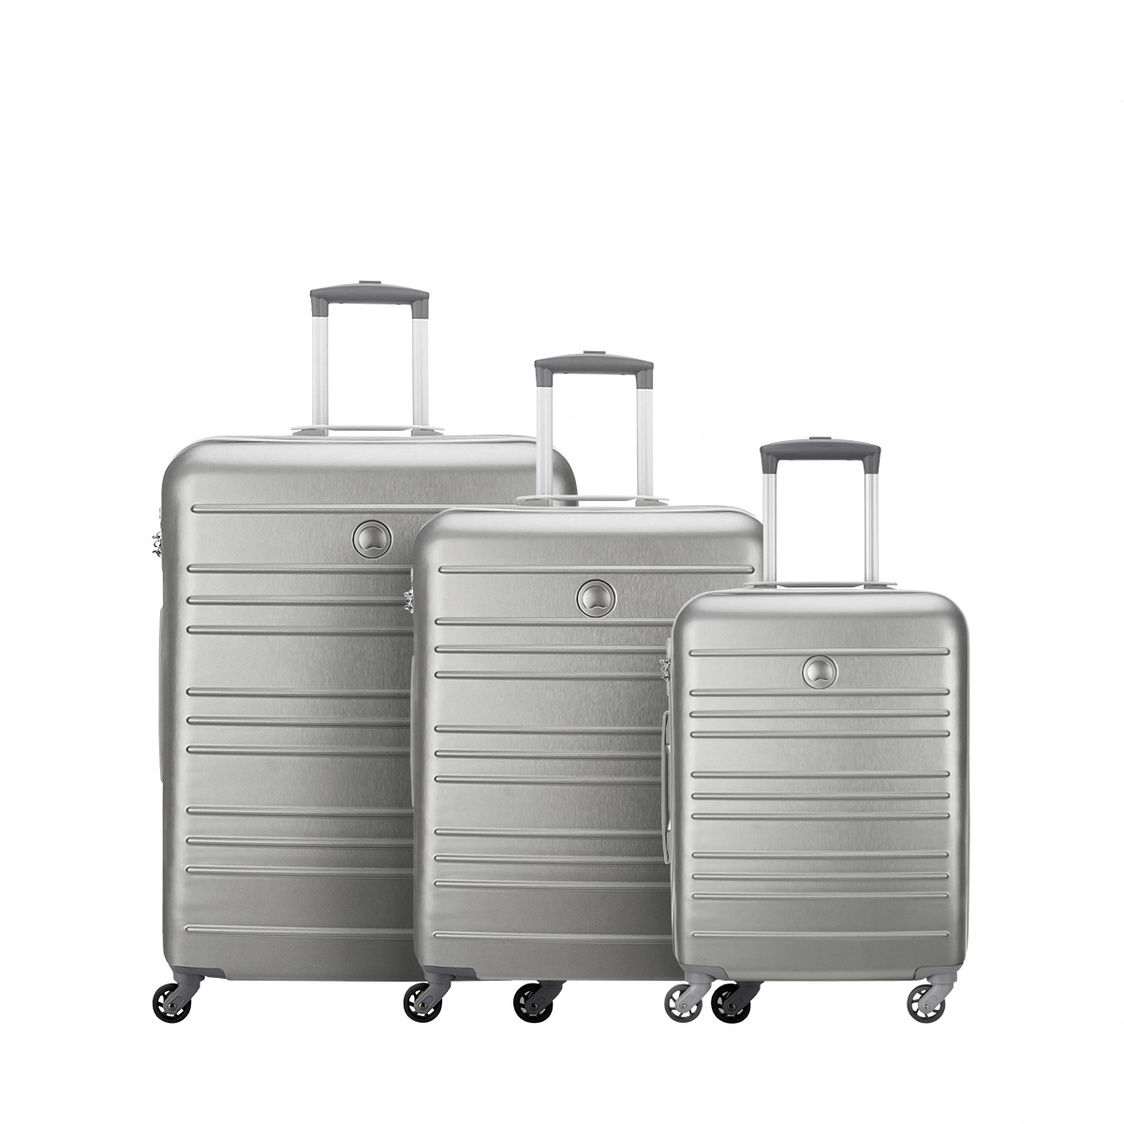 Carlit 4-Wheel Expandable Trolley Case Brushed Silver